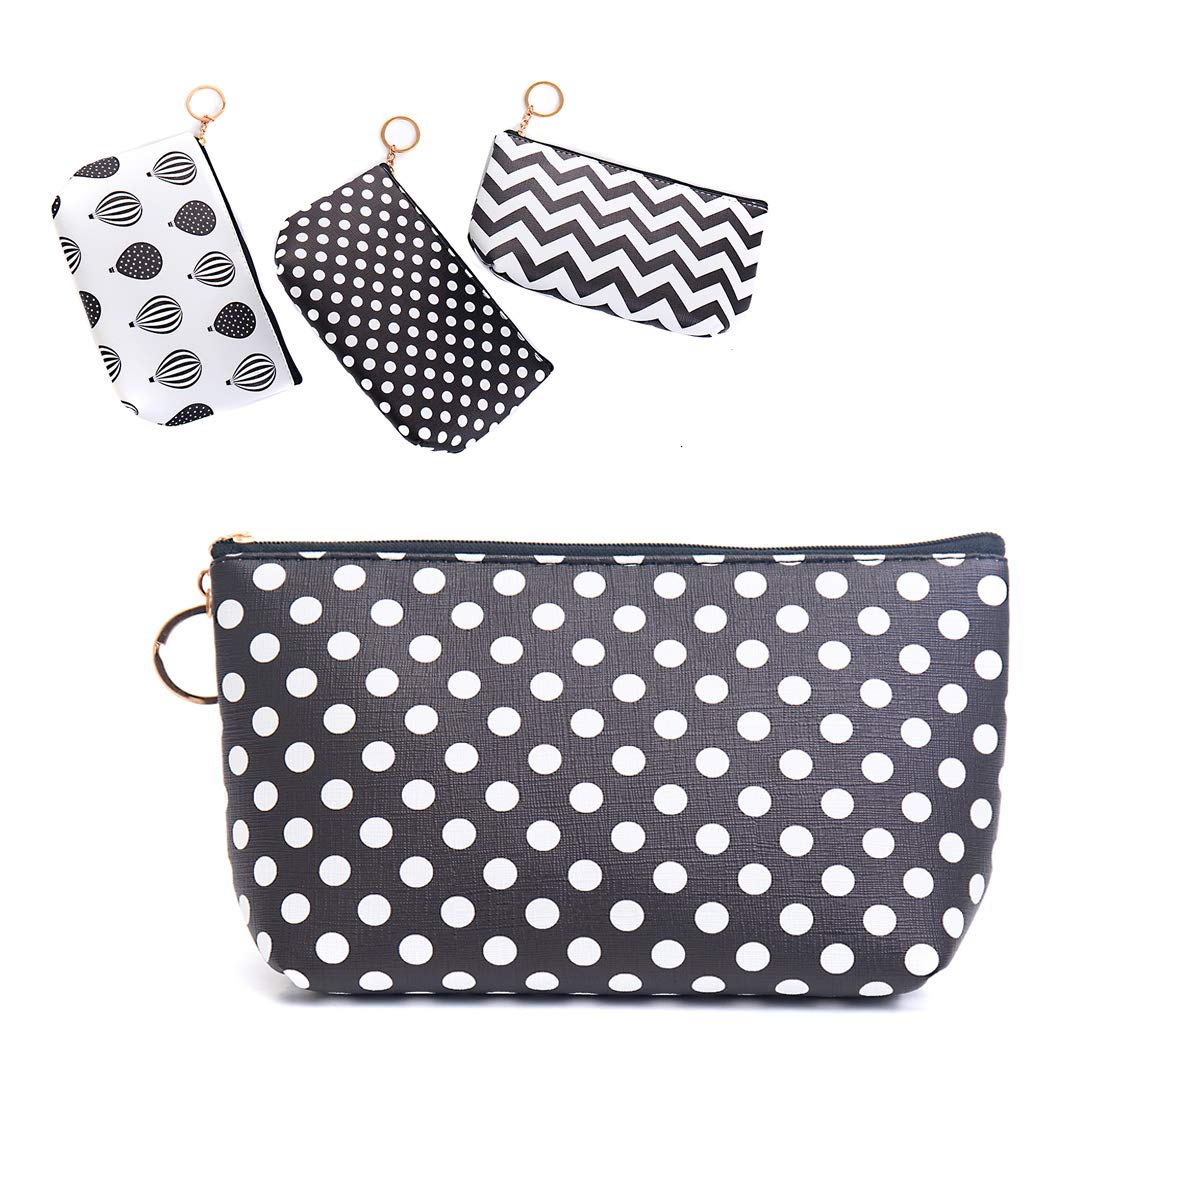 Small Cute Cosmetic Bag For Women Travel Accessories Bag Makeup Pouch Durable Waterproof Organizer Handbag With Zipper(Black/White Polka Dots)